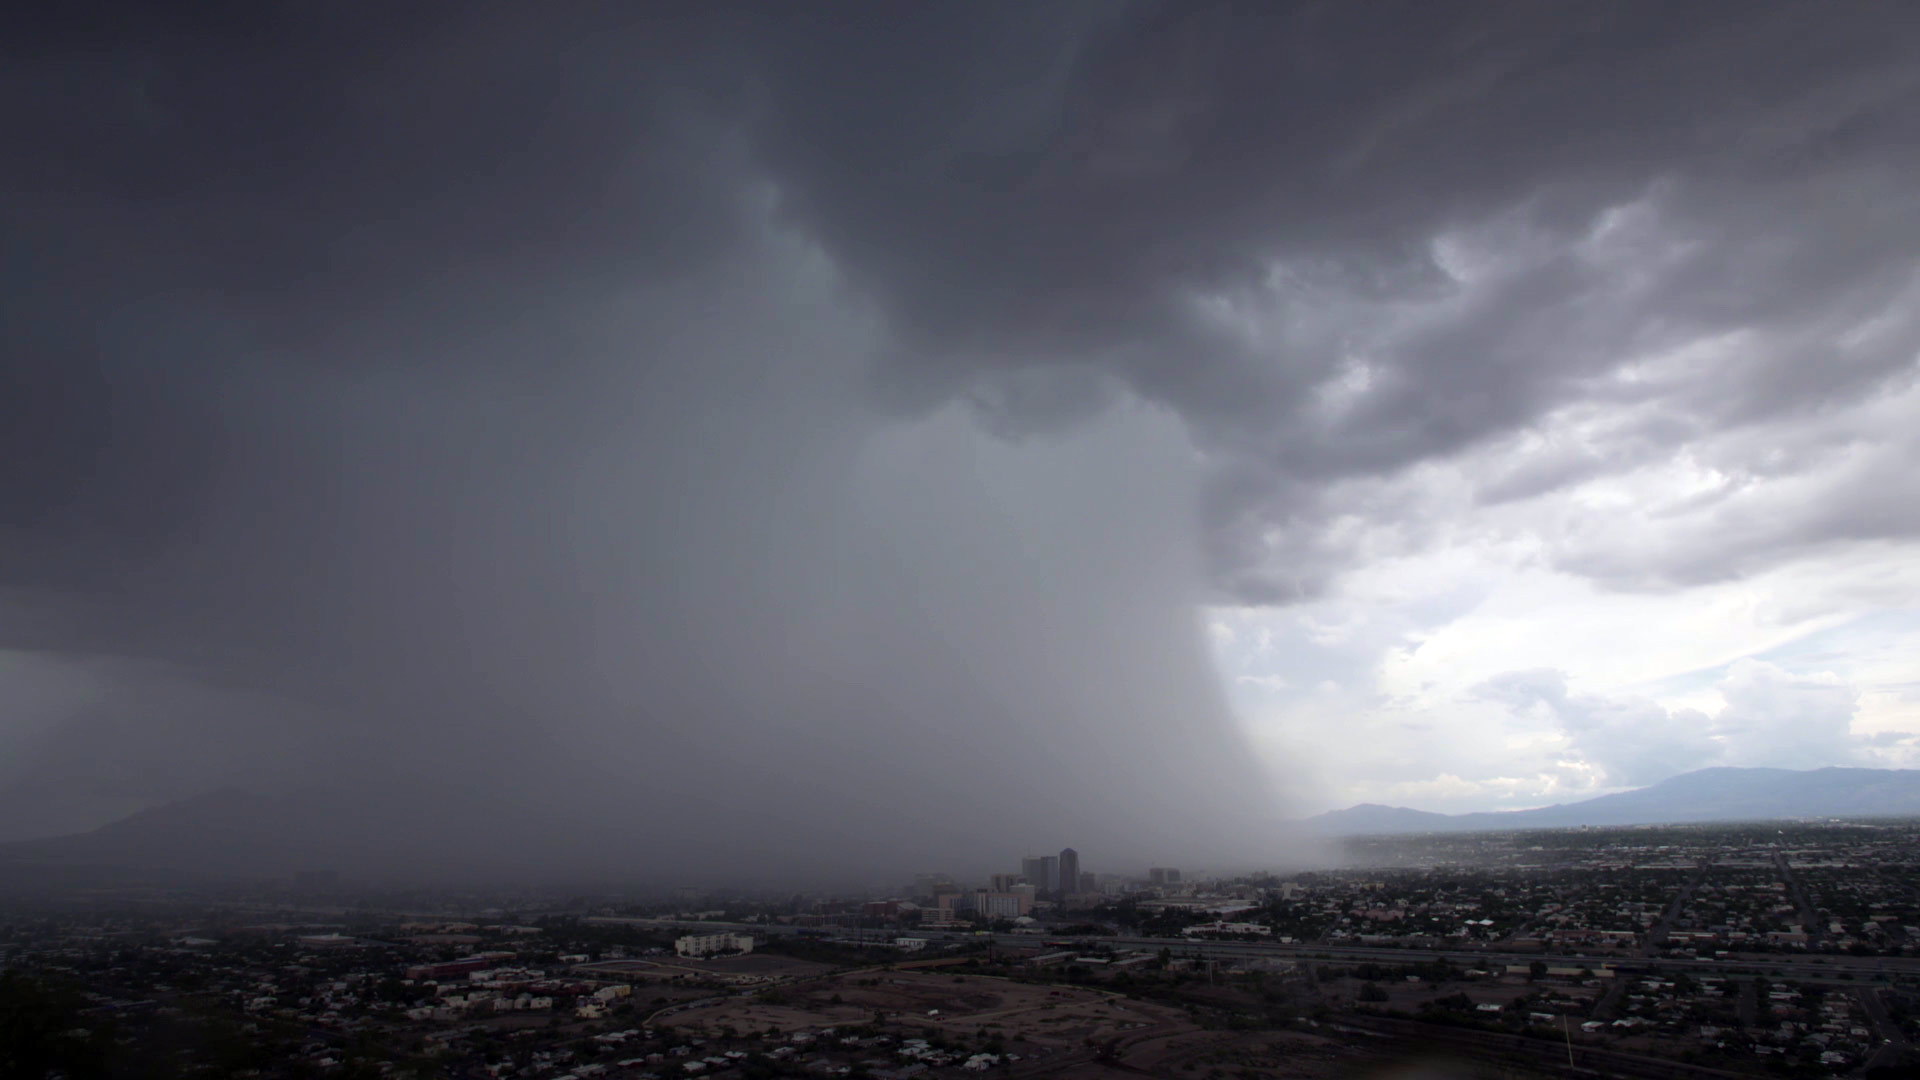 A heavy monsoon storm over the city of Tucson, 2017.